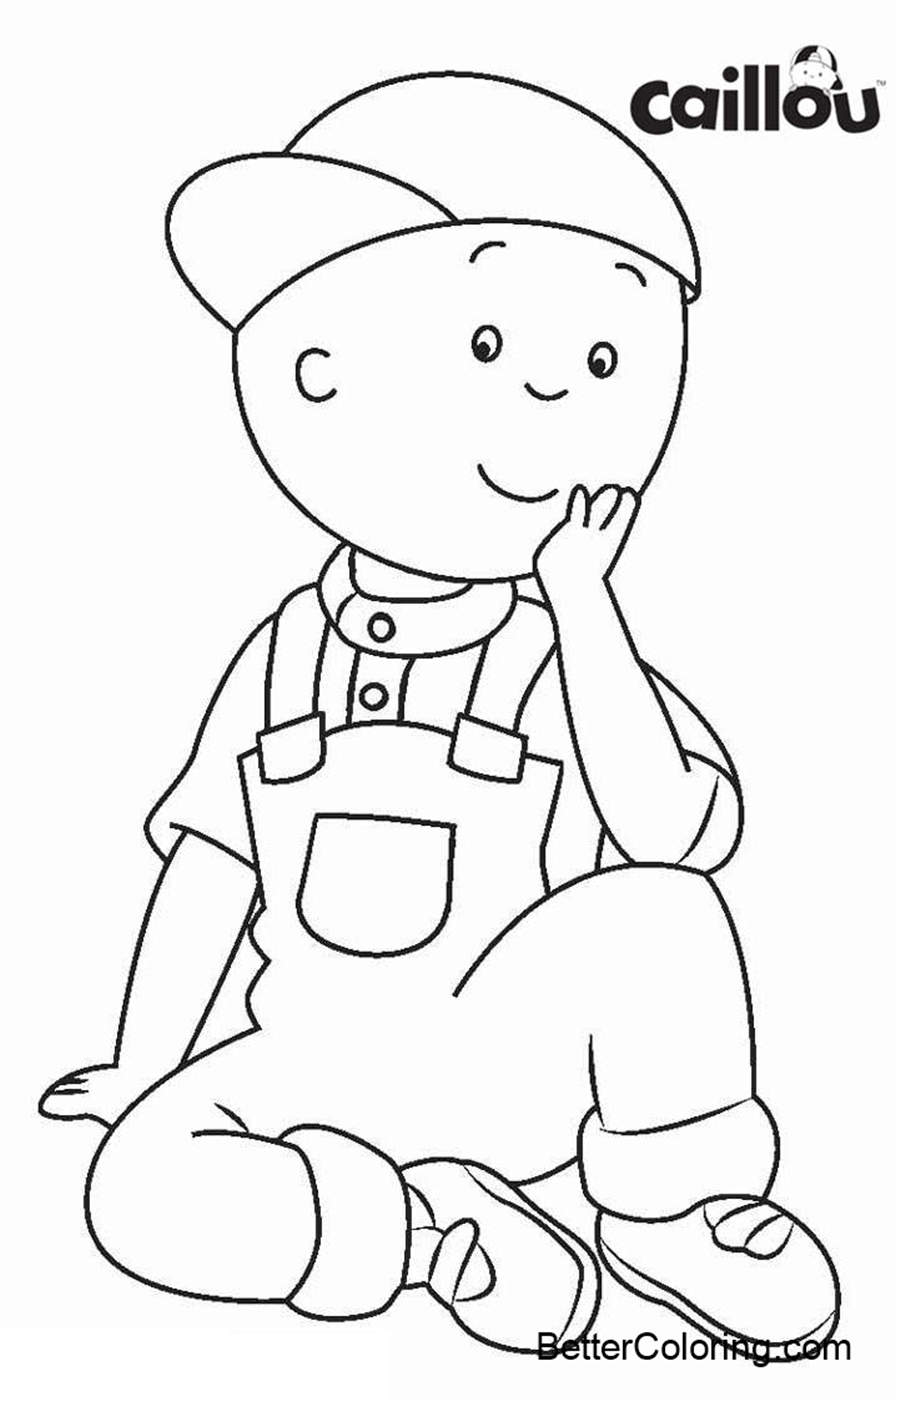 Free Caillou Coloring Pages in Hat printable